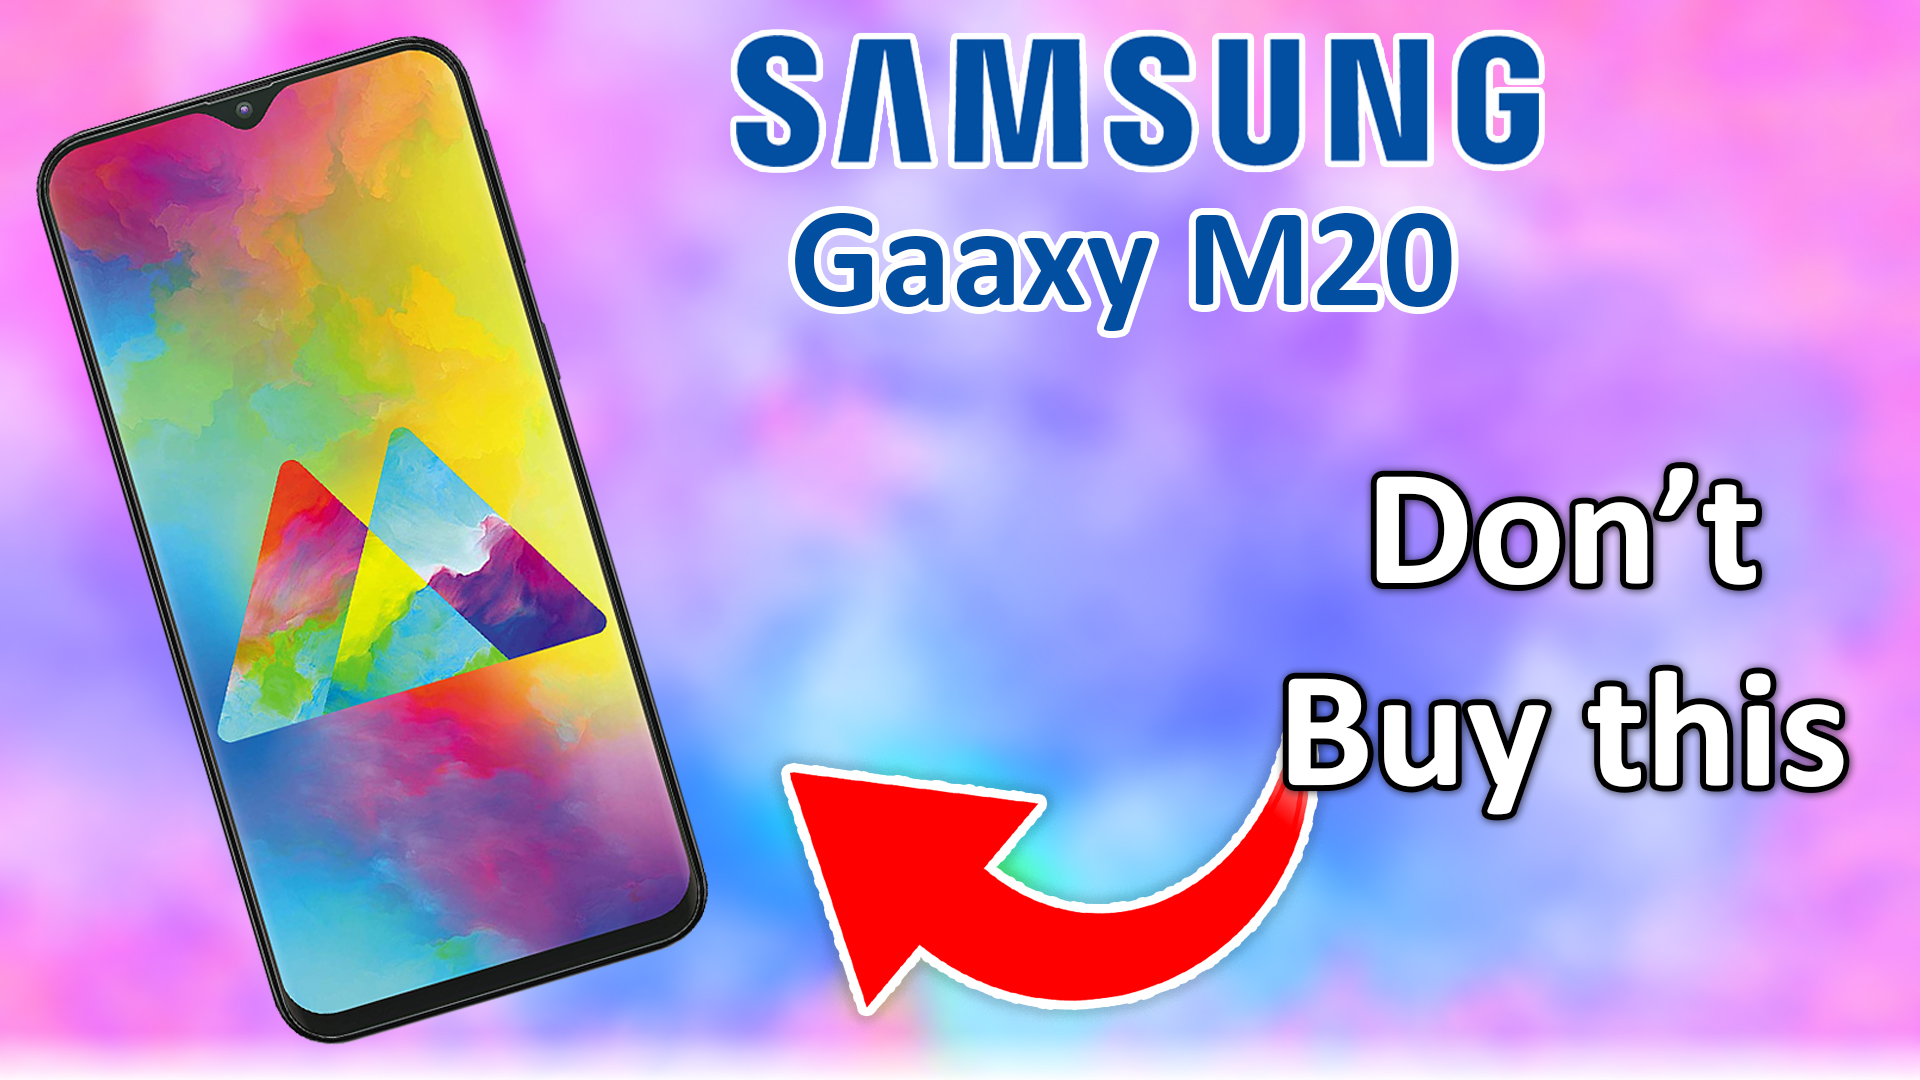 Top 5 things you can't consider on Samsung galaxy M20